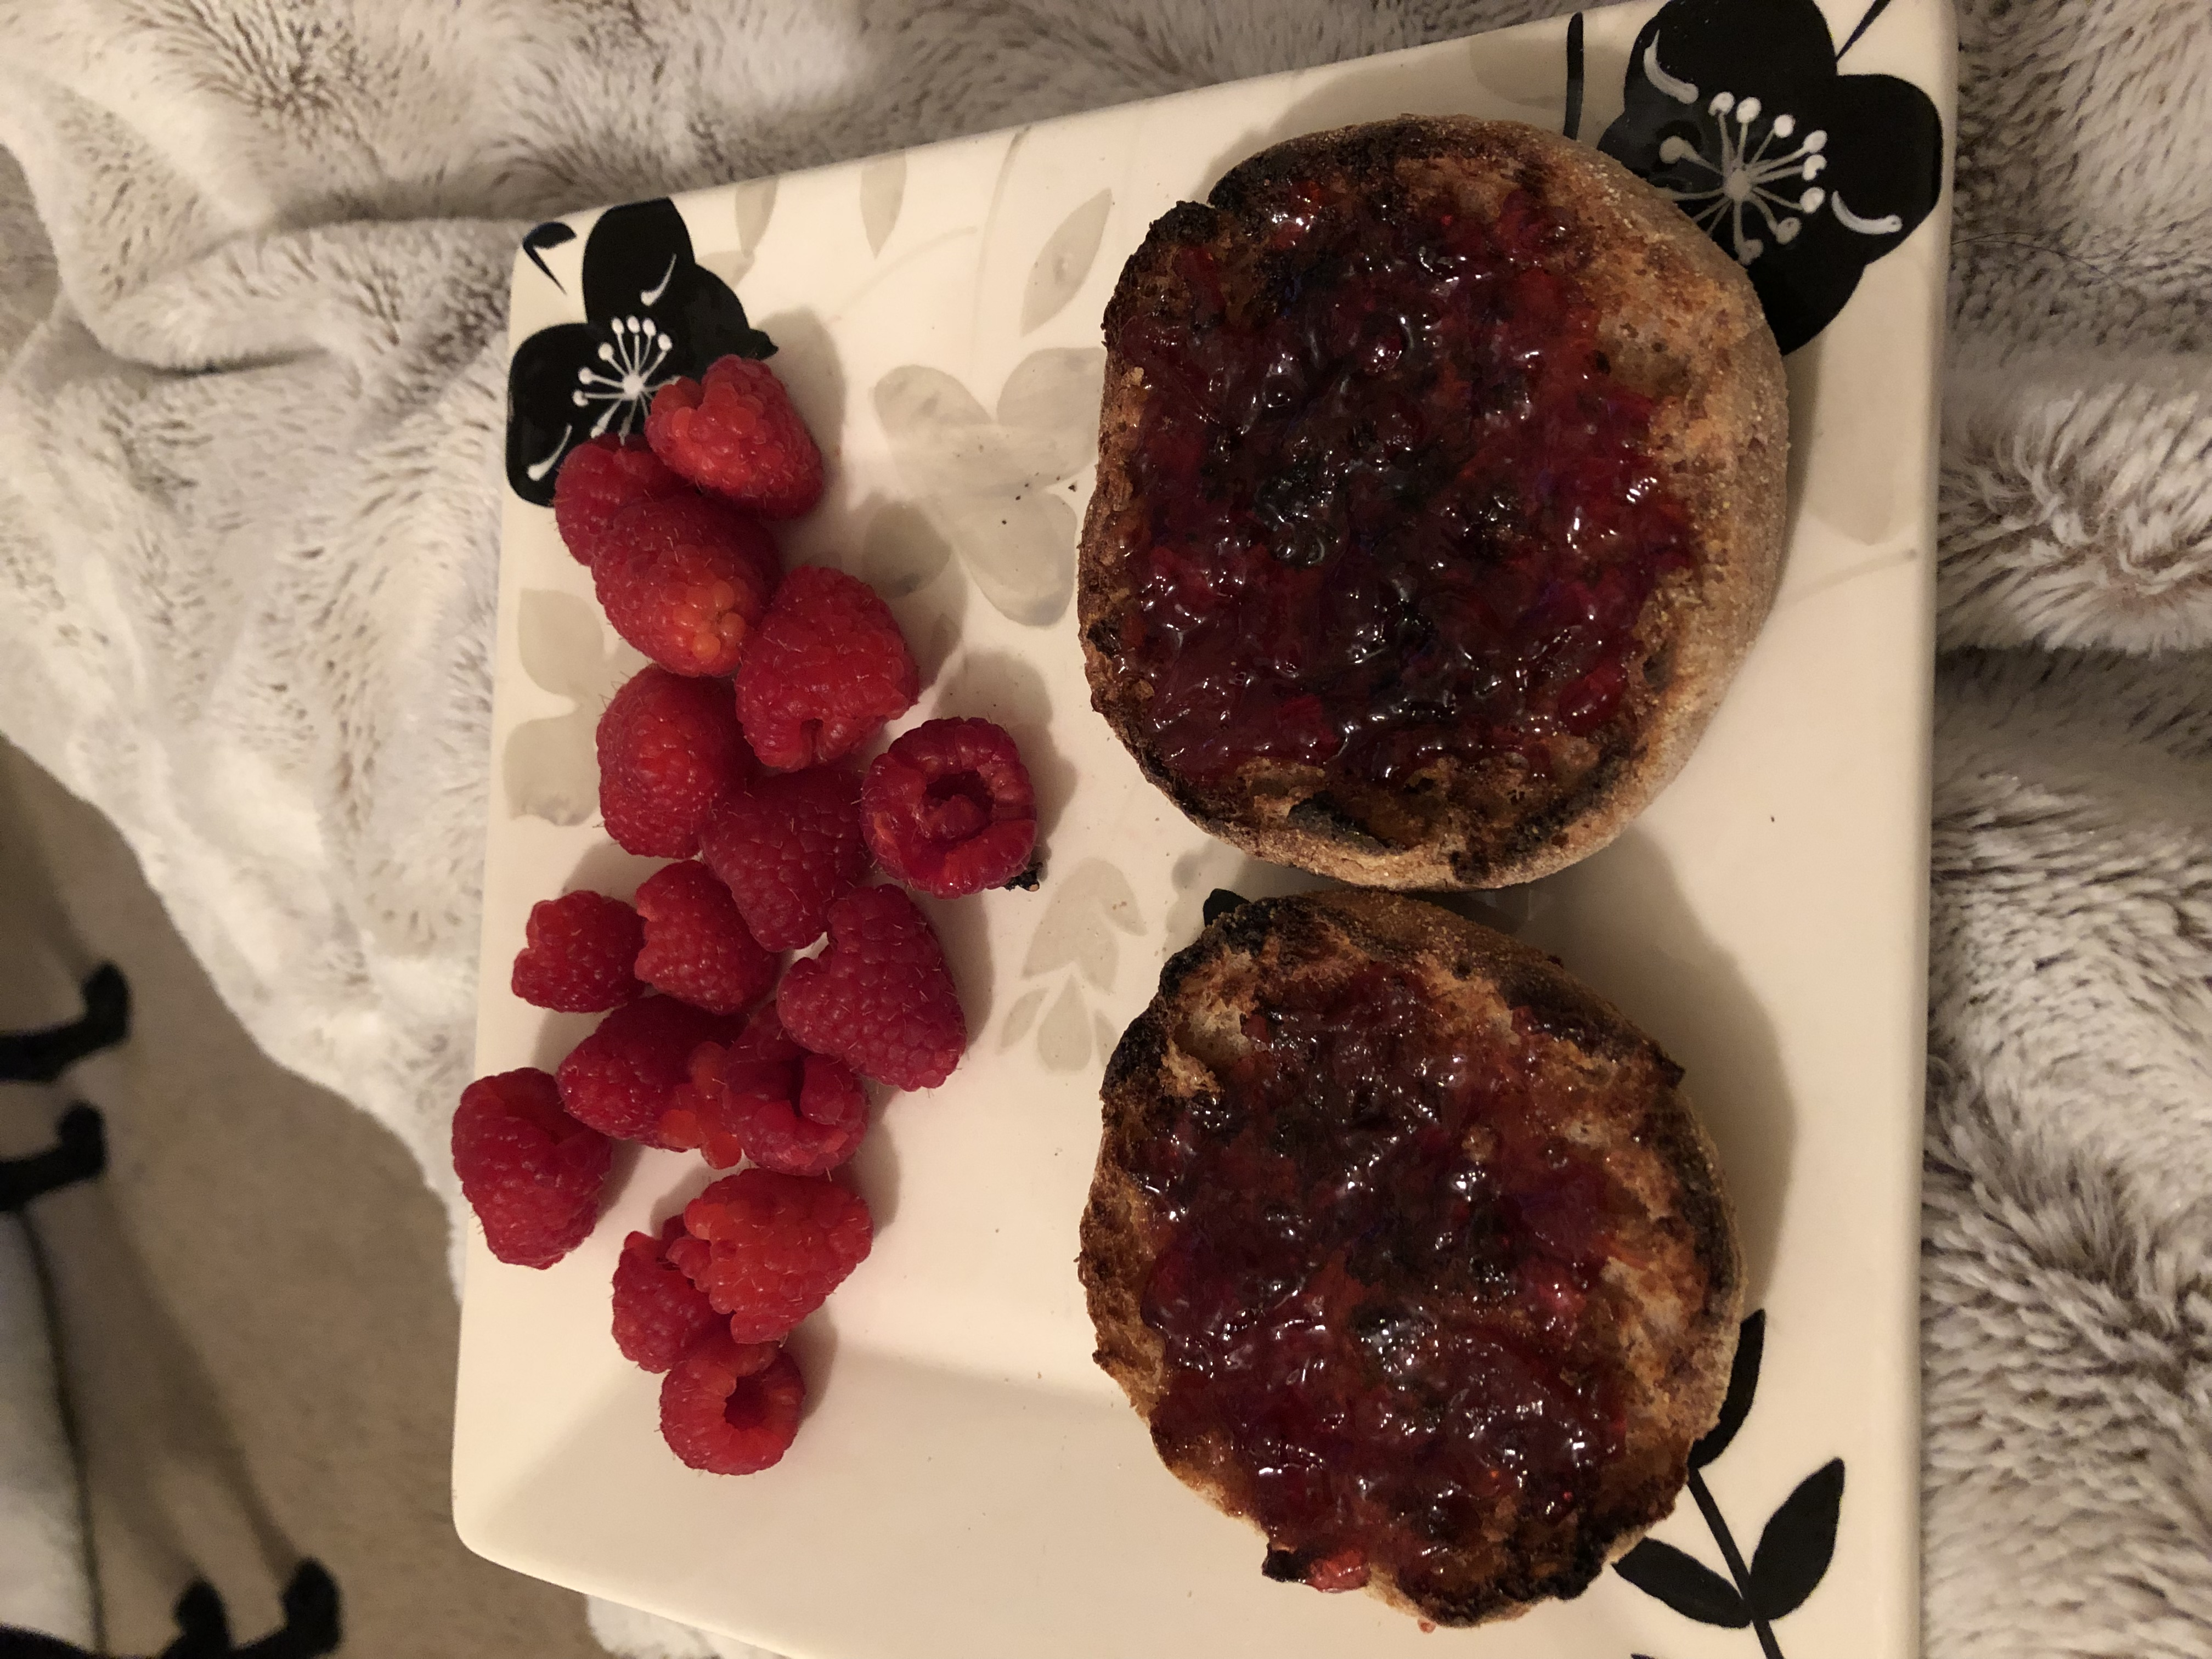 English muffin with jam and raspberries